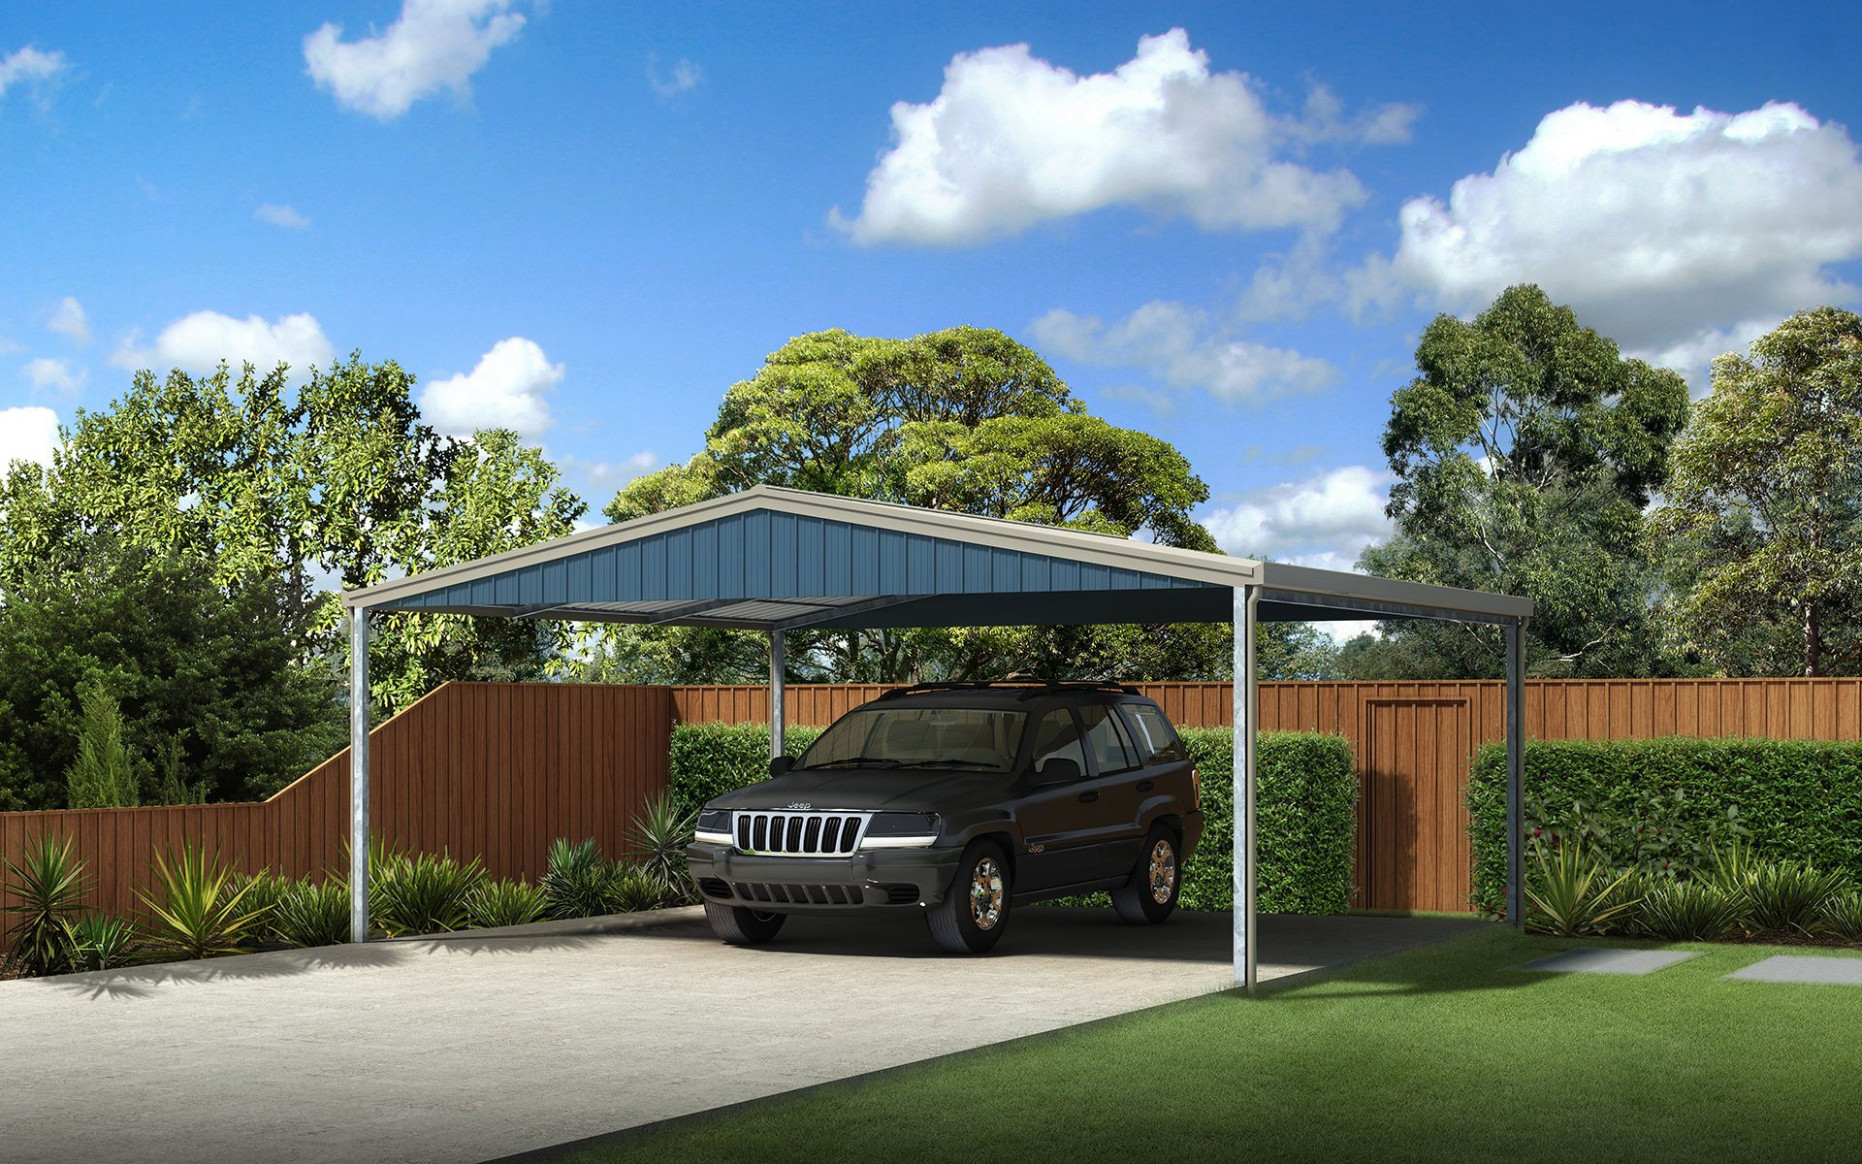 Carports Sheds And Garages For Sale Ranbuild Double Garage With Carport